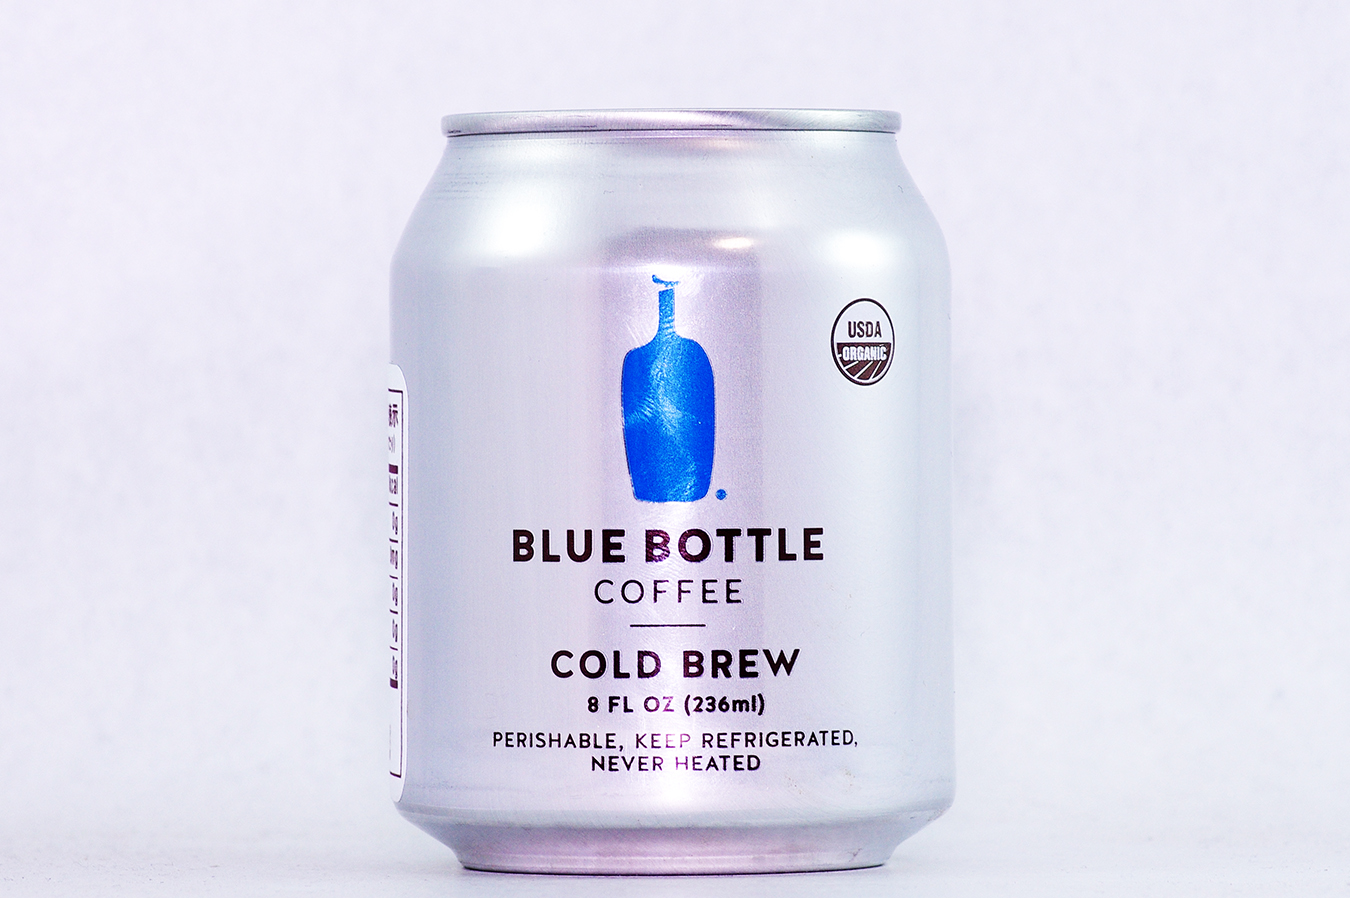 BLUE BOTTLE COFFEE COLD BREW 表面 2017年3月